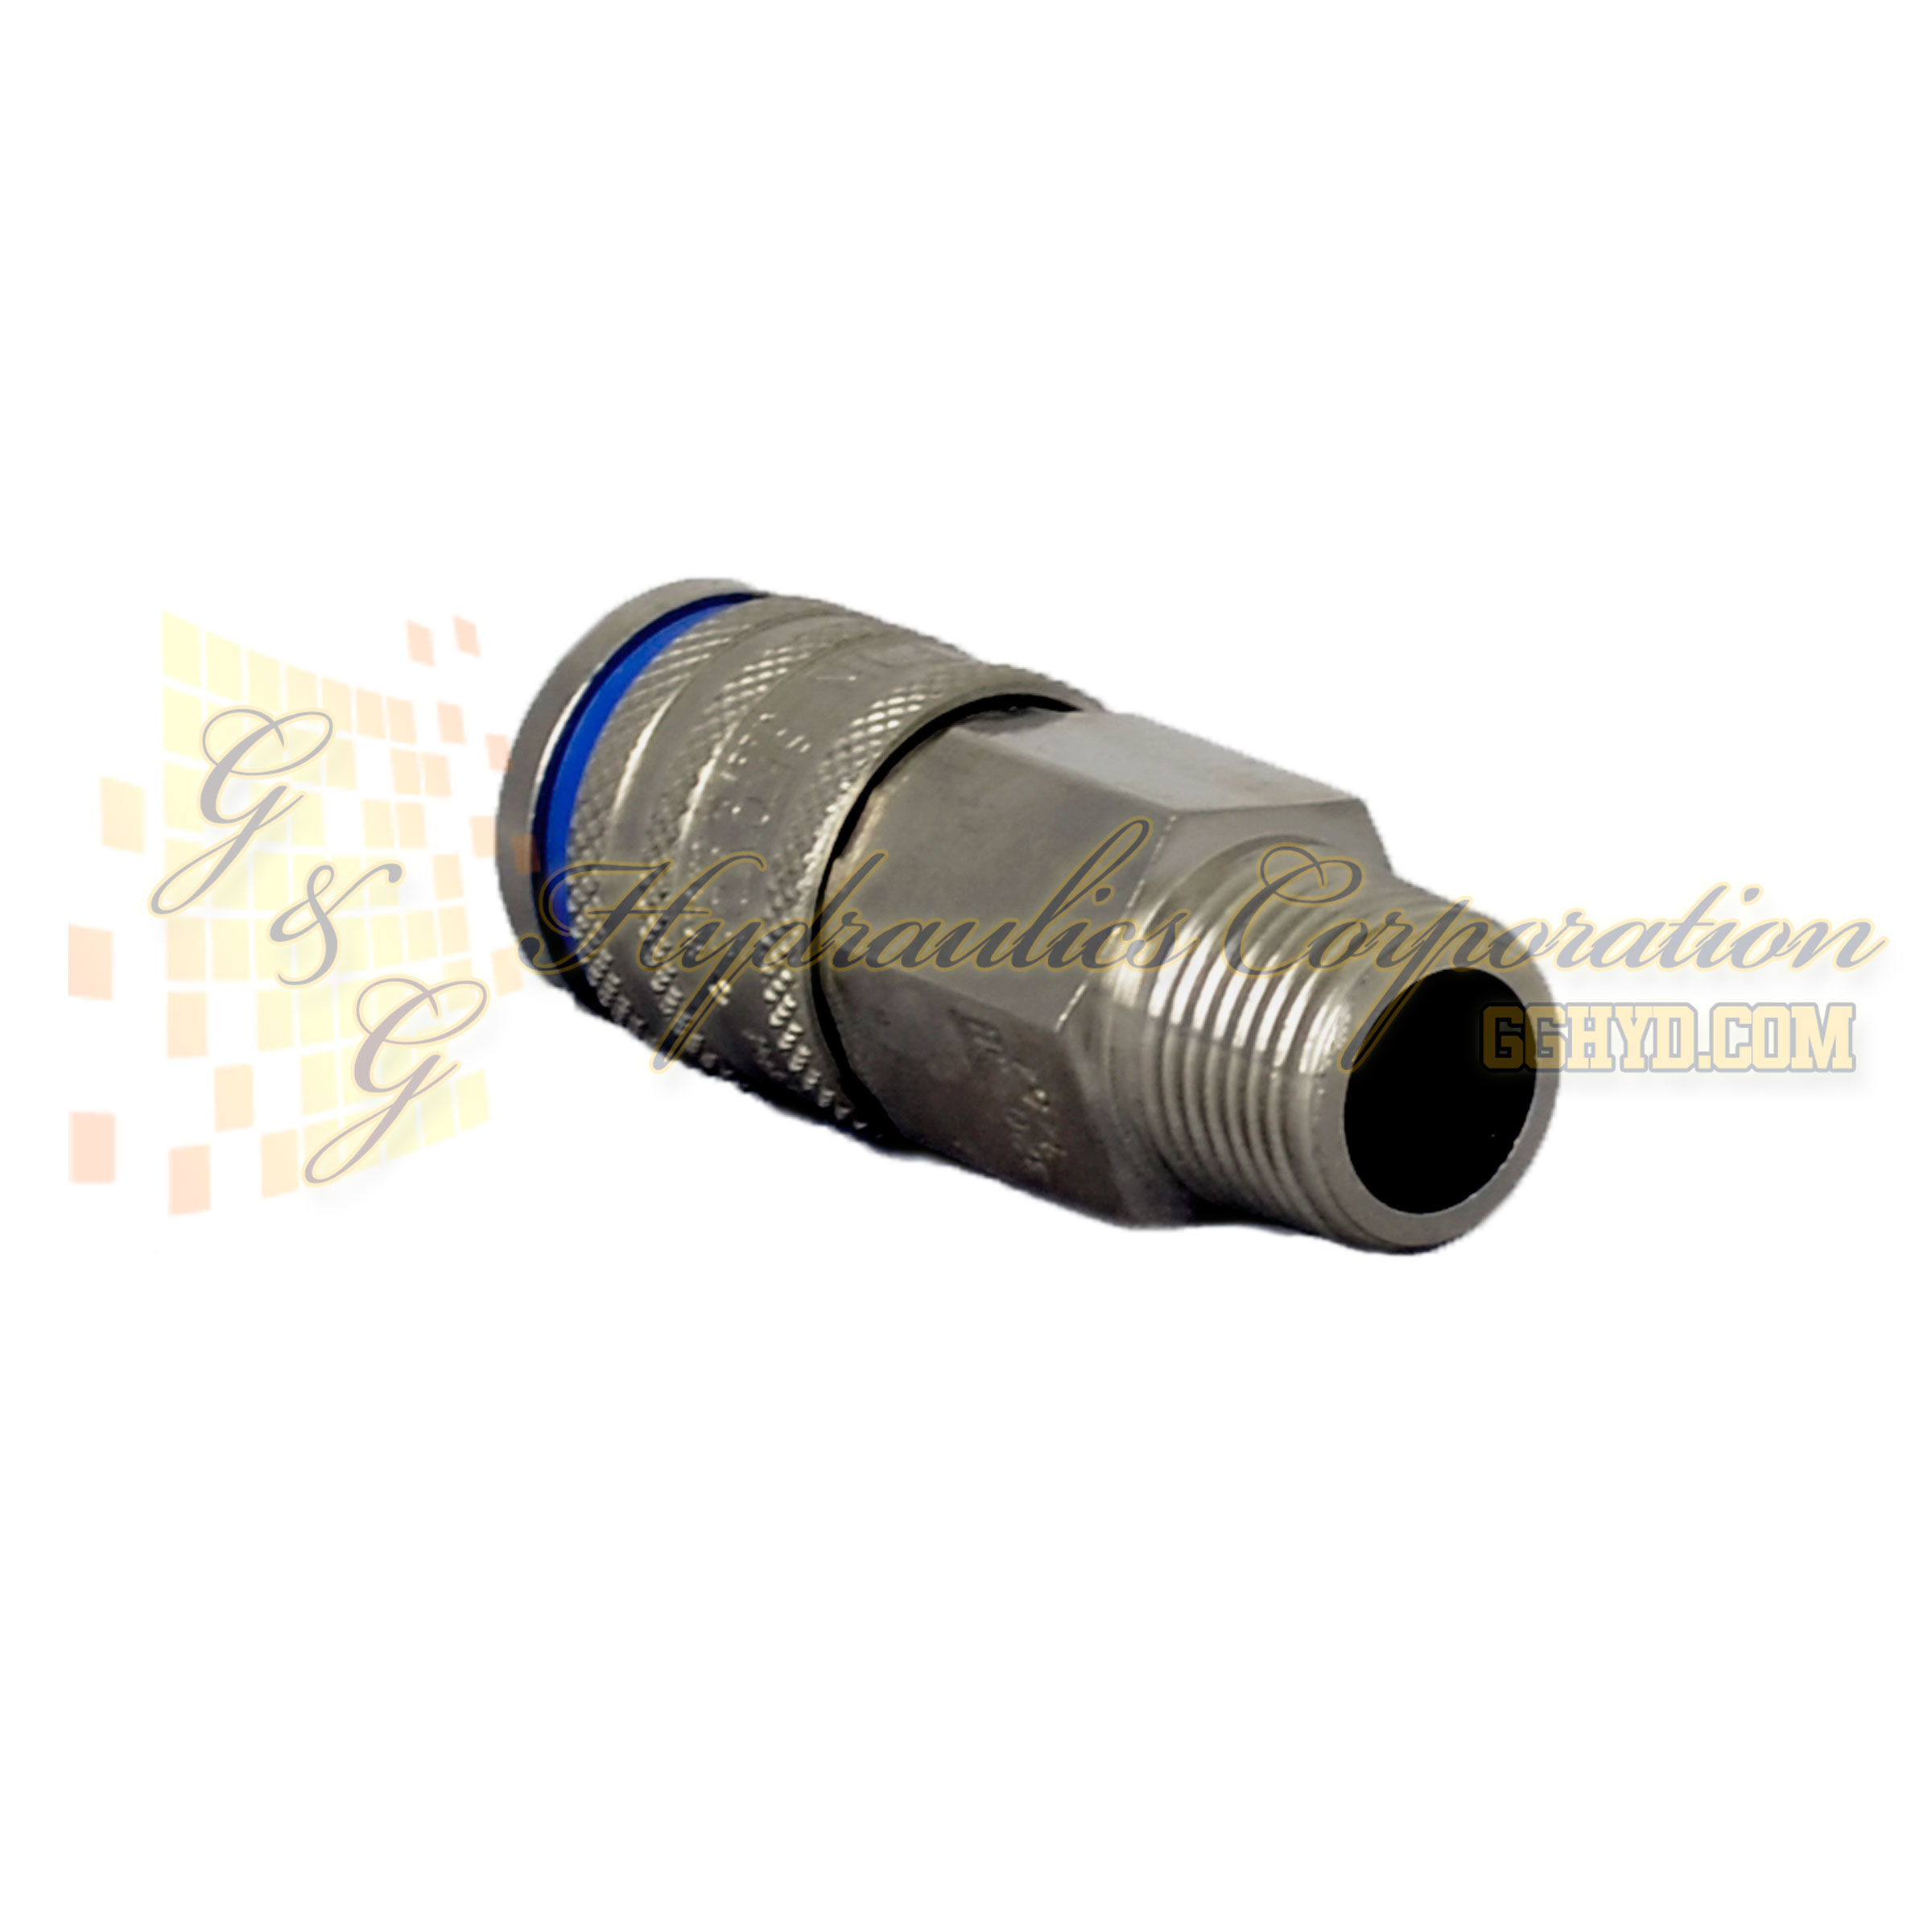 "10-320-1454 CEJN Standard and Vented Safety Coupler, 3/8"" NPT Male Threads"